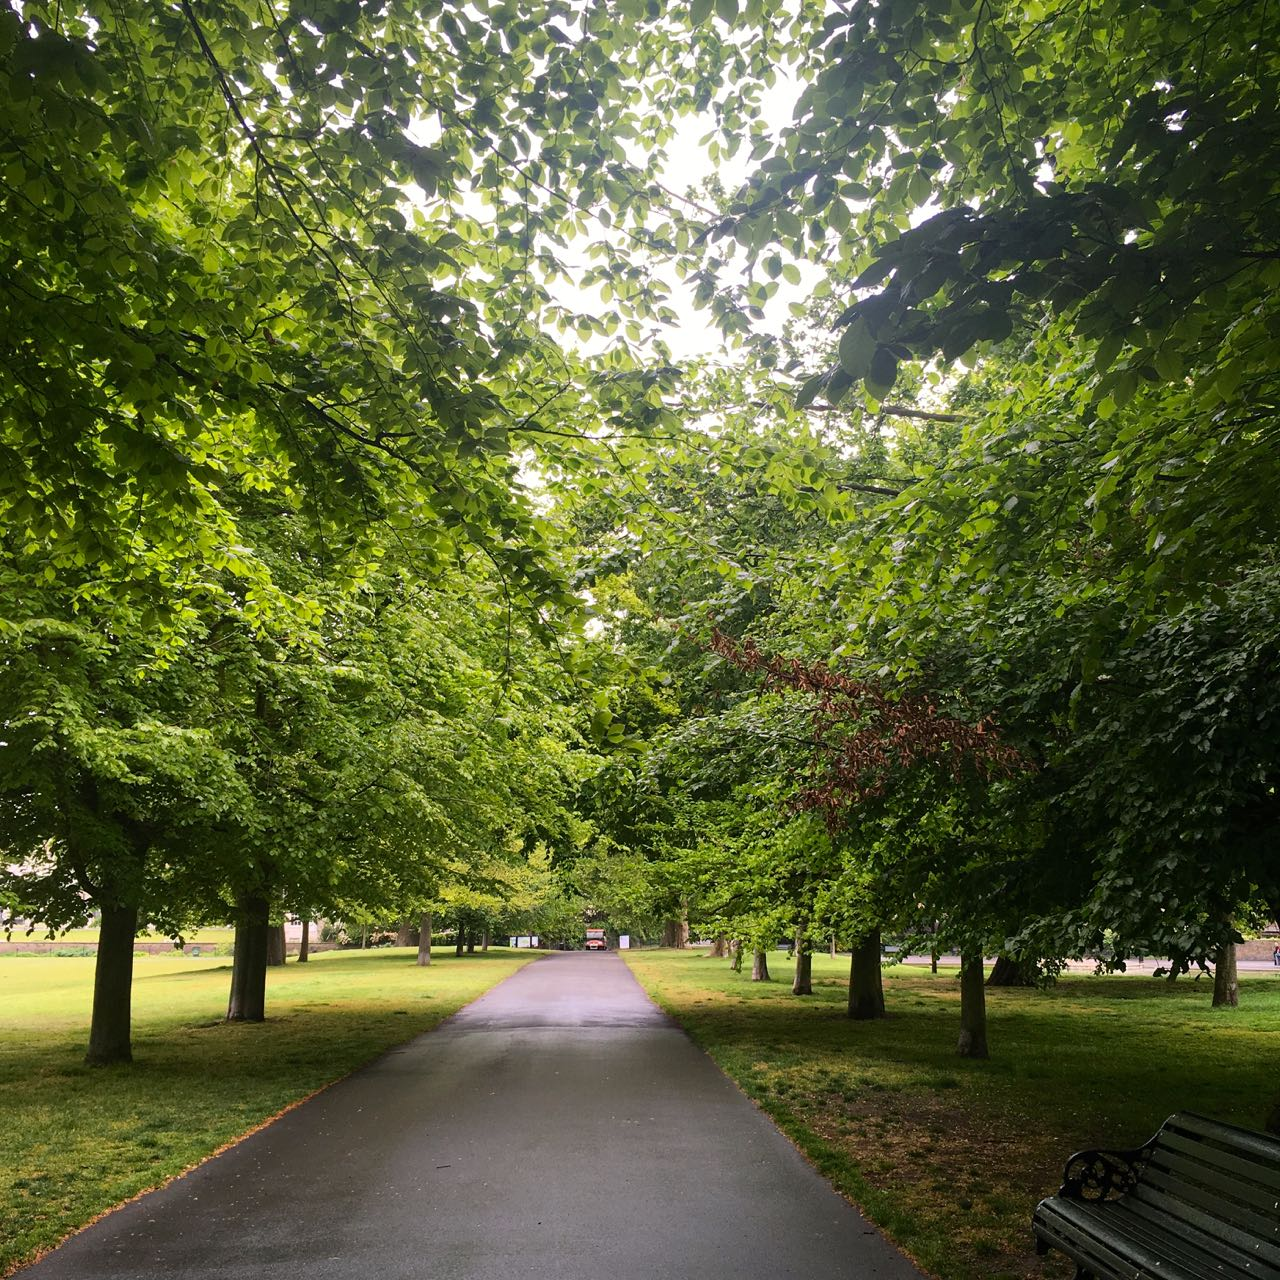 The view down my regular walking commute route to work where the canopy is now much more dense